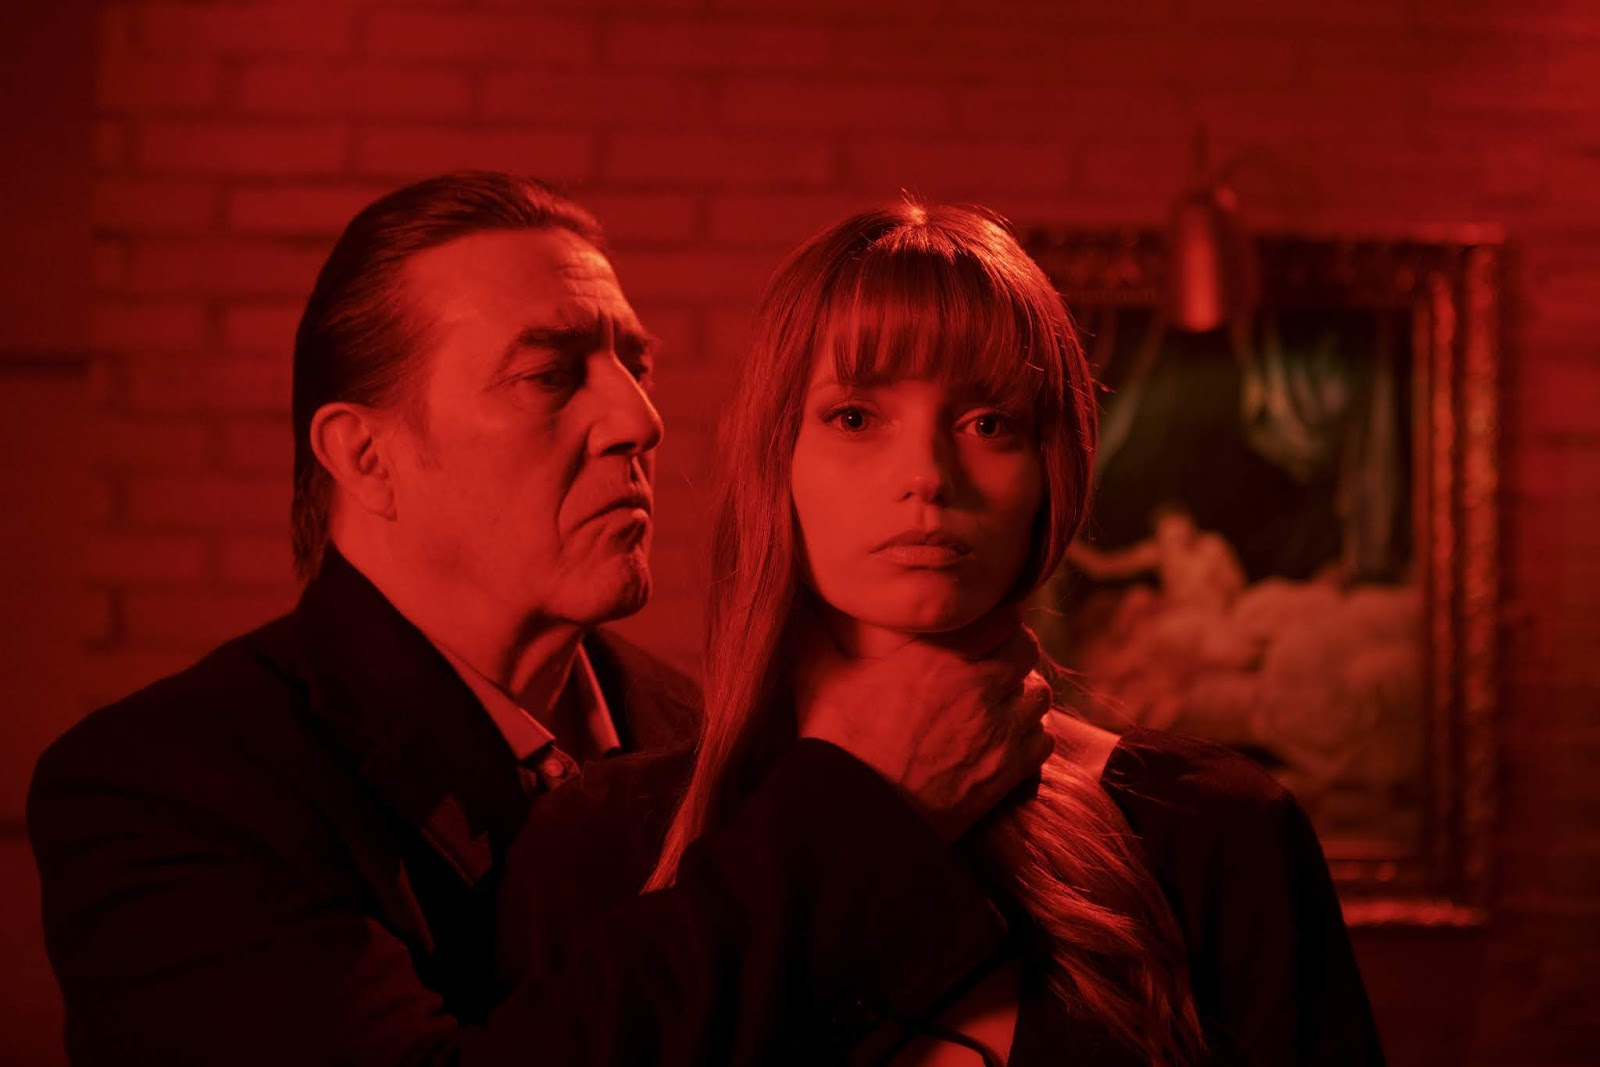 Ciarán Hinds and Abbey Lee in Elizabeth Harvest